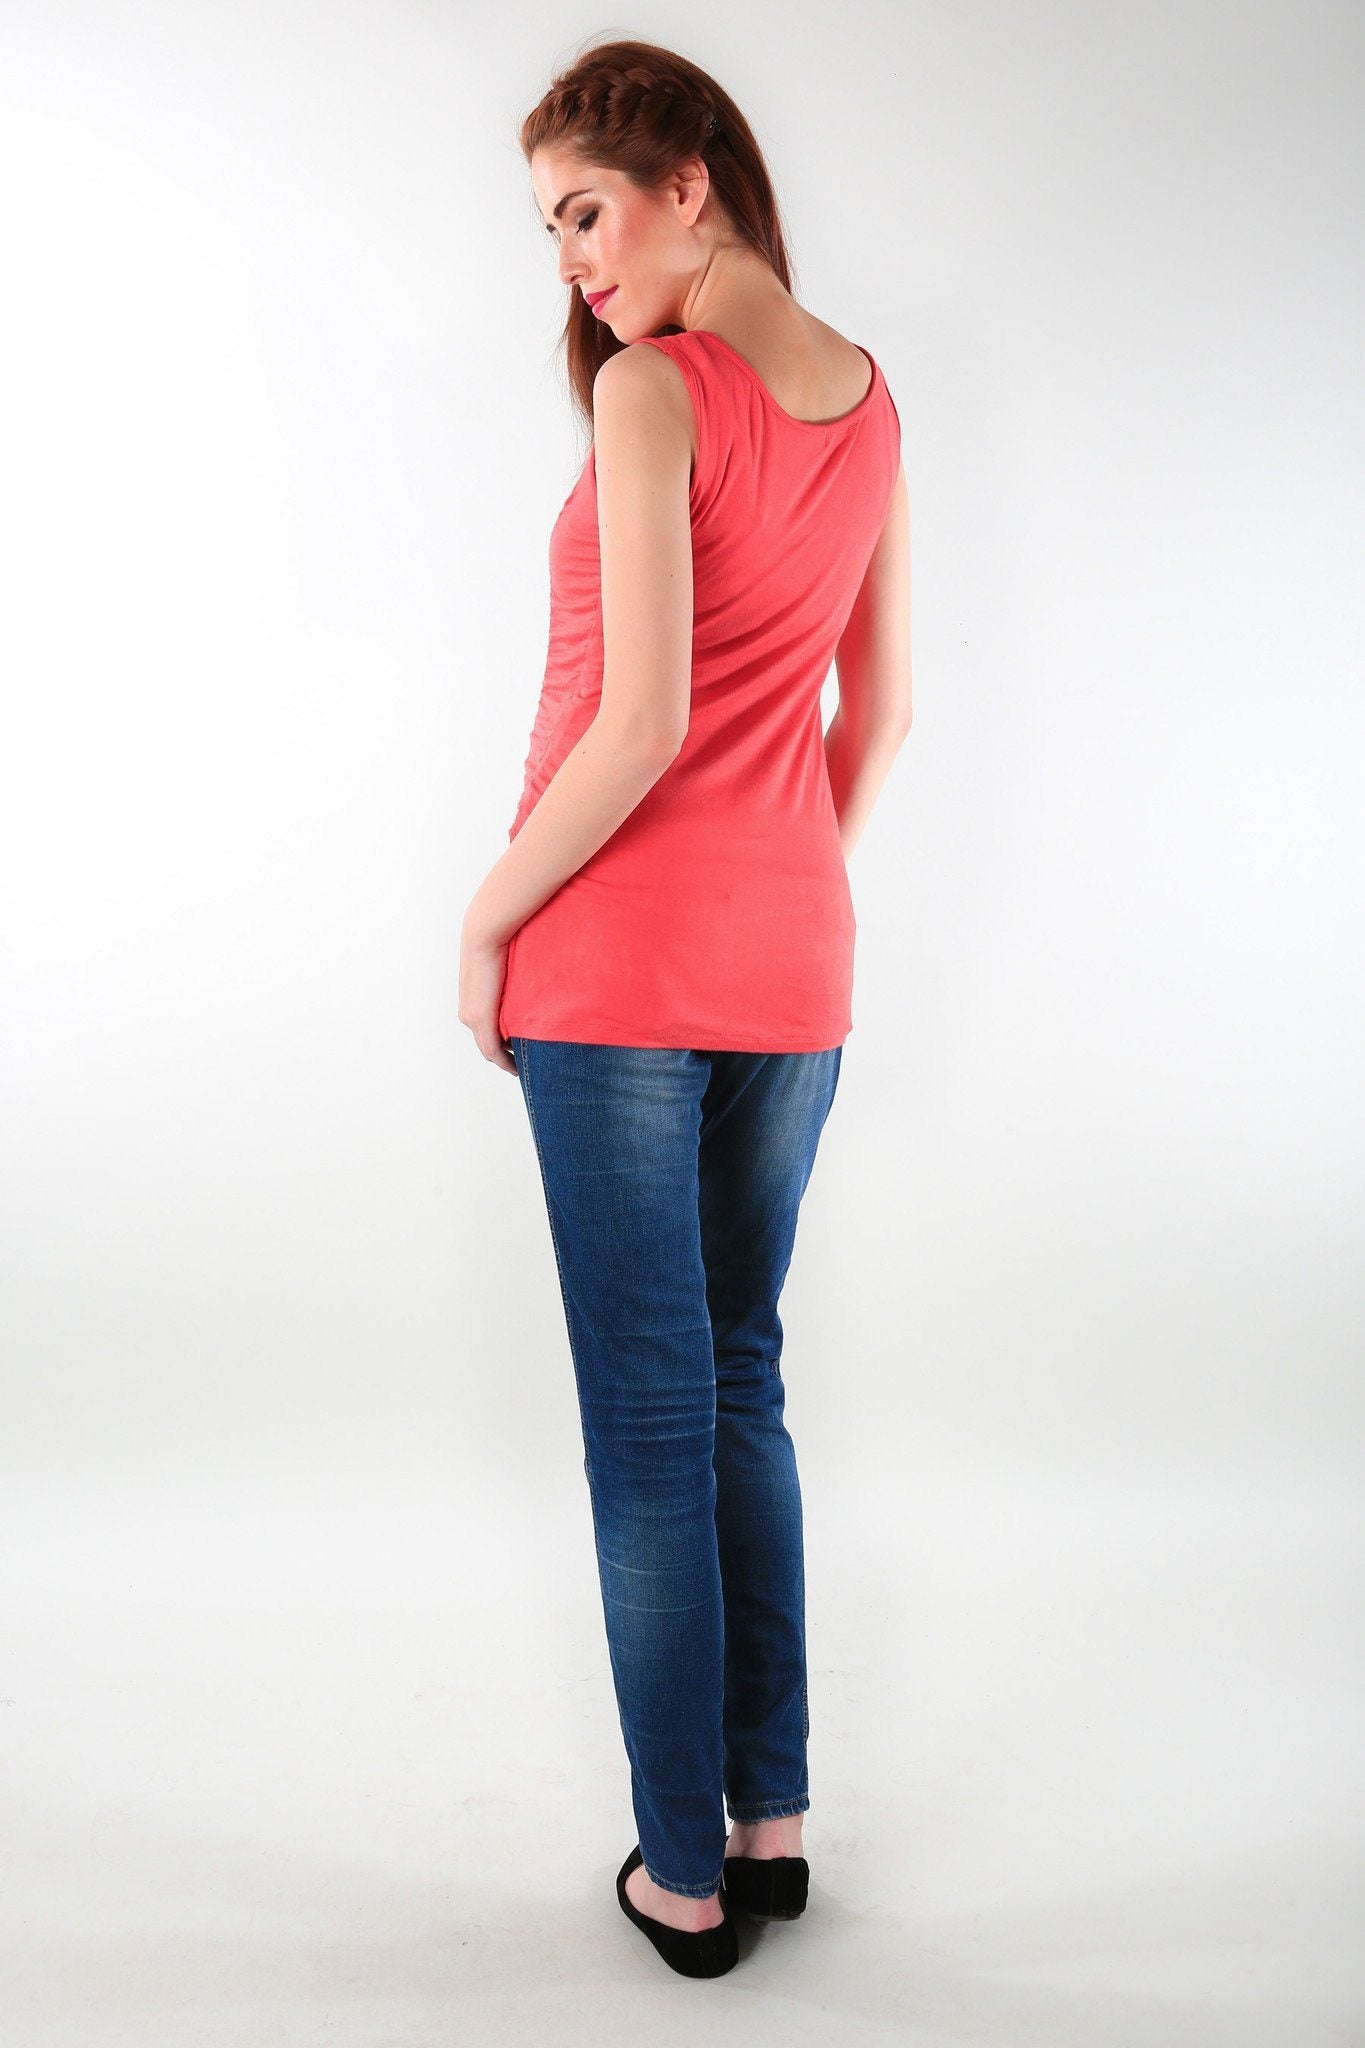 Gathered Coral Maternity Tank Top - MOMZJOY.COM - 3